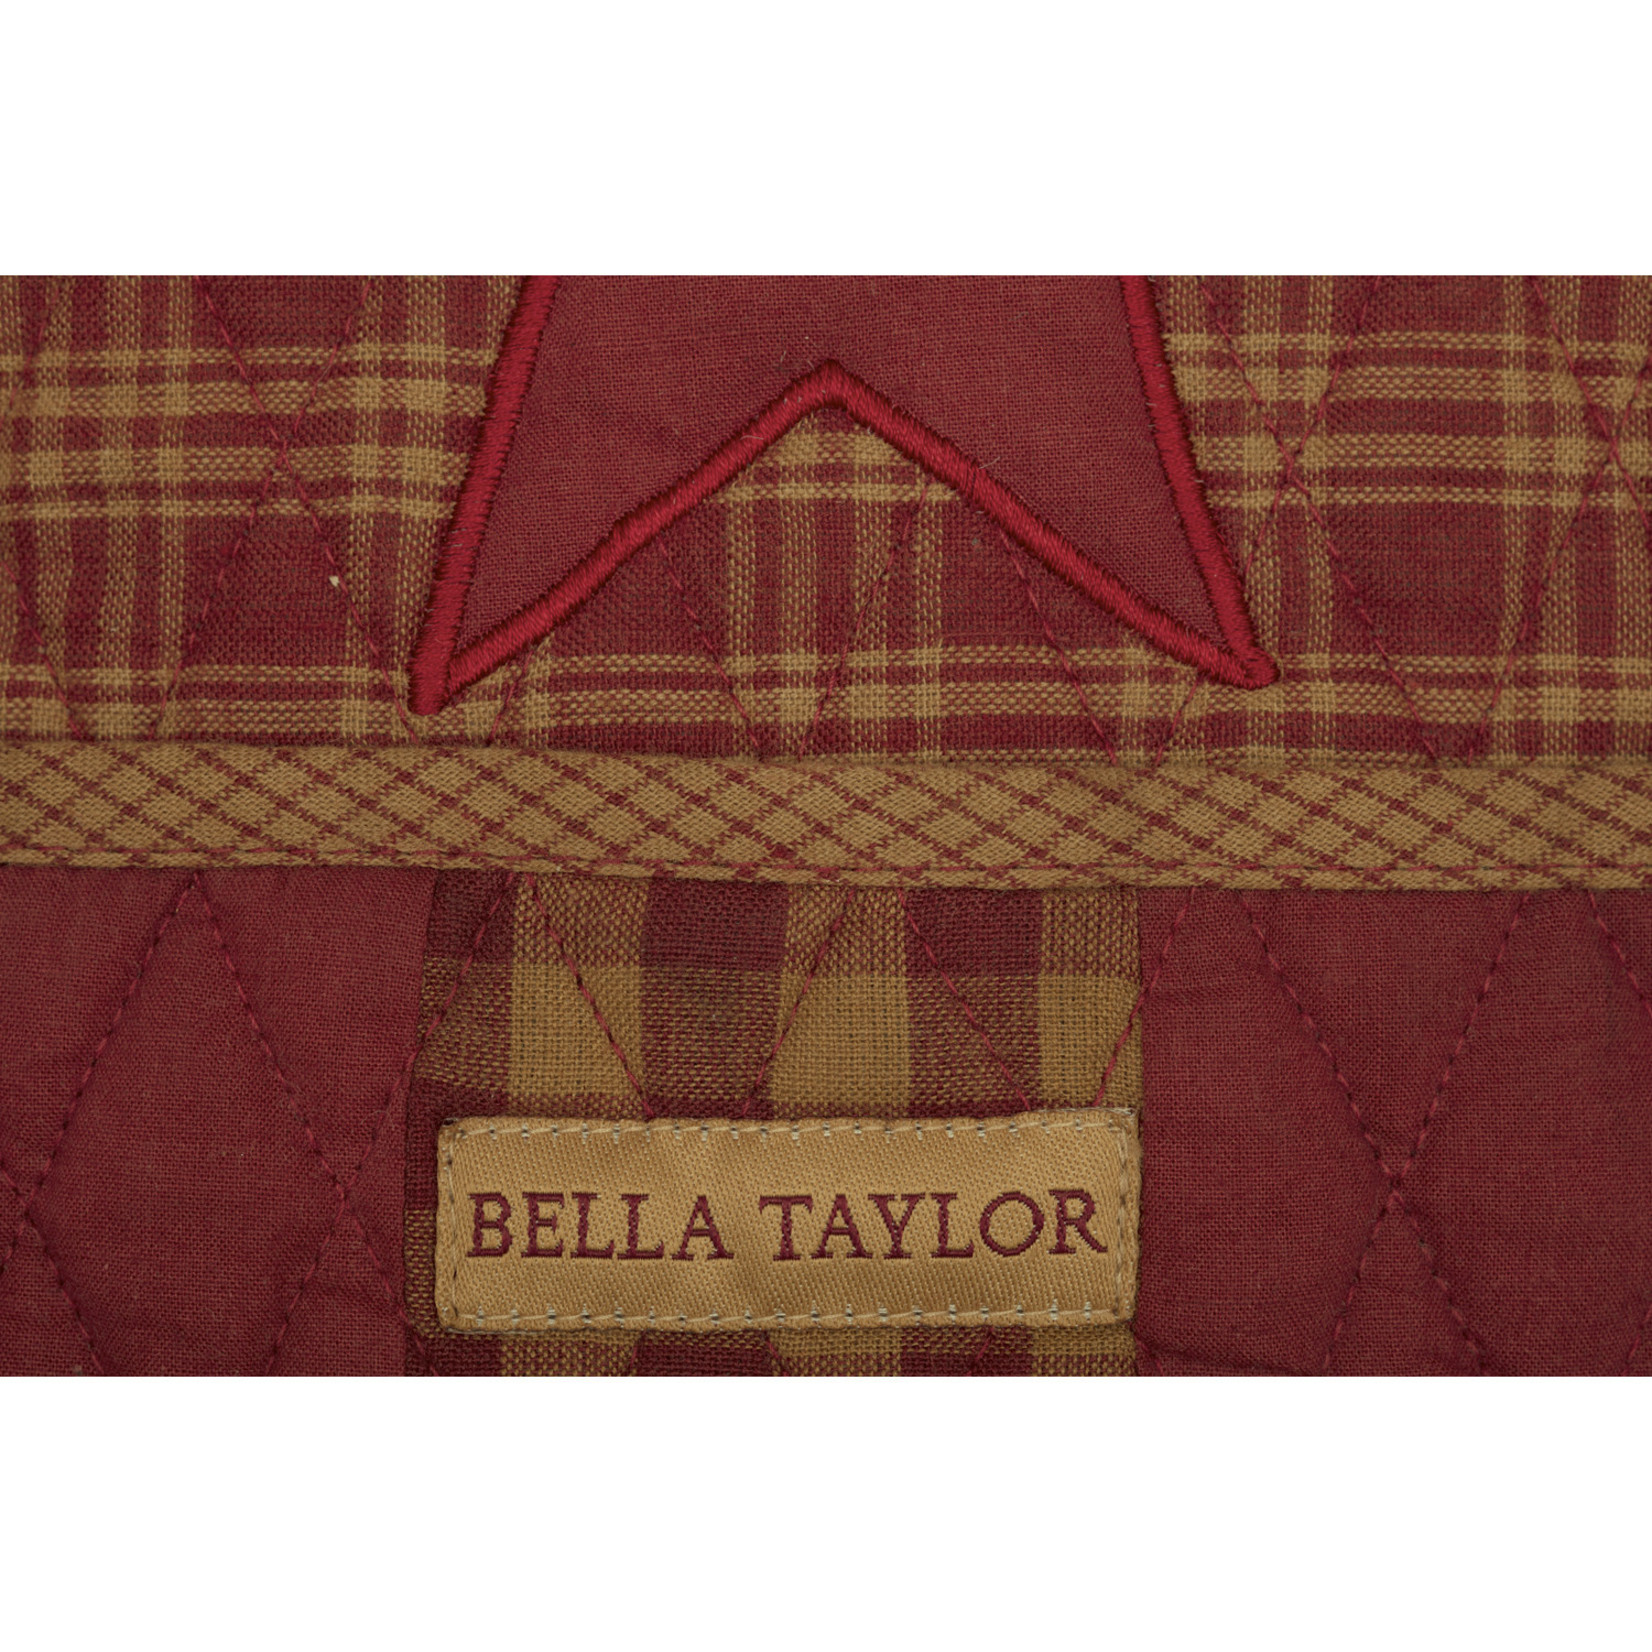 Bella Taylor Ninepatch Star - Stride handbag